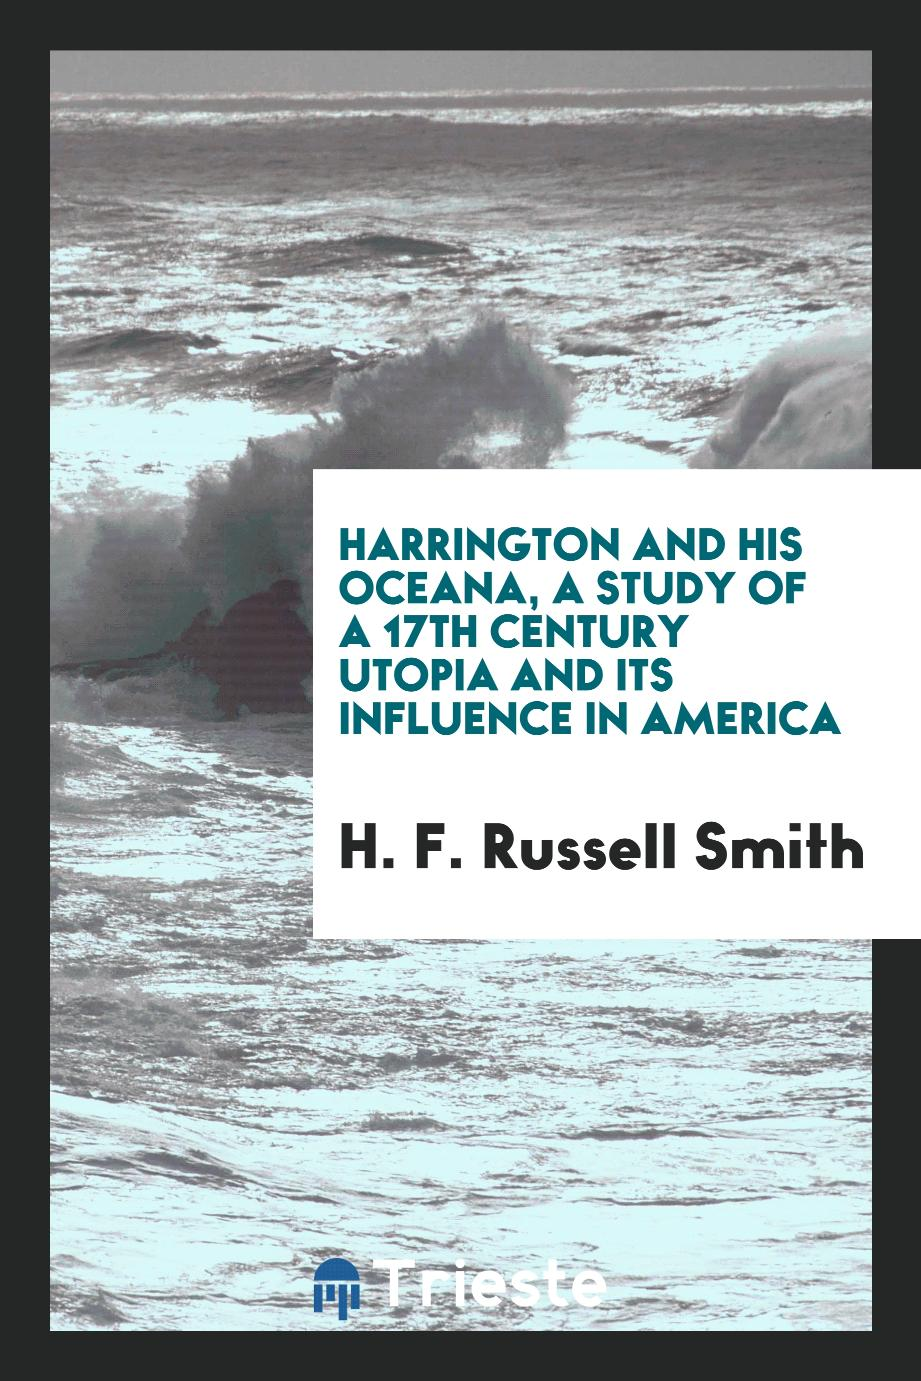 Harrington and his Oceana, a study of a 17th century Utopia and its influence in America